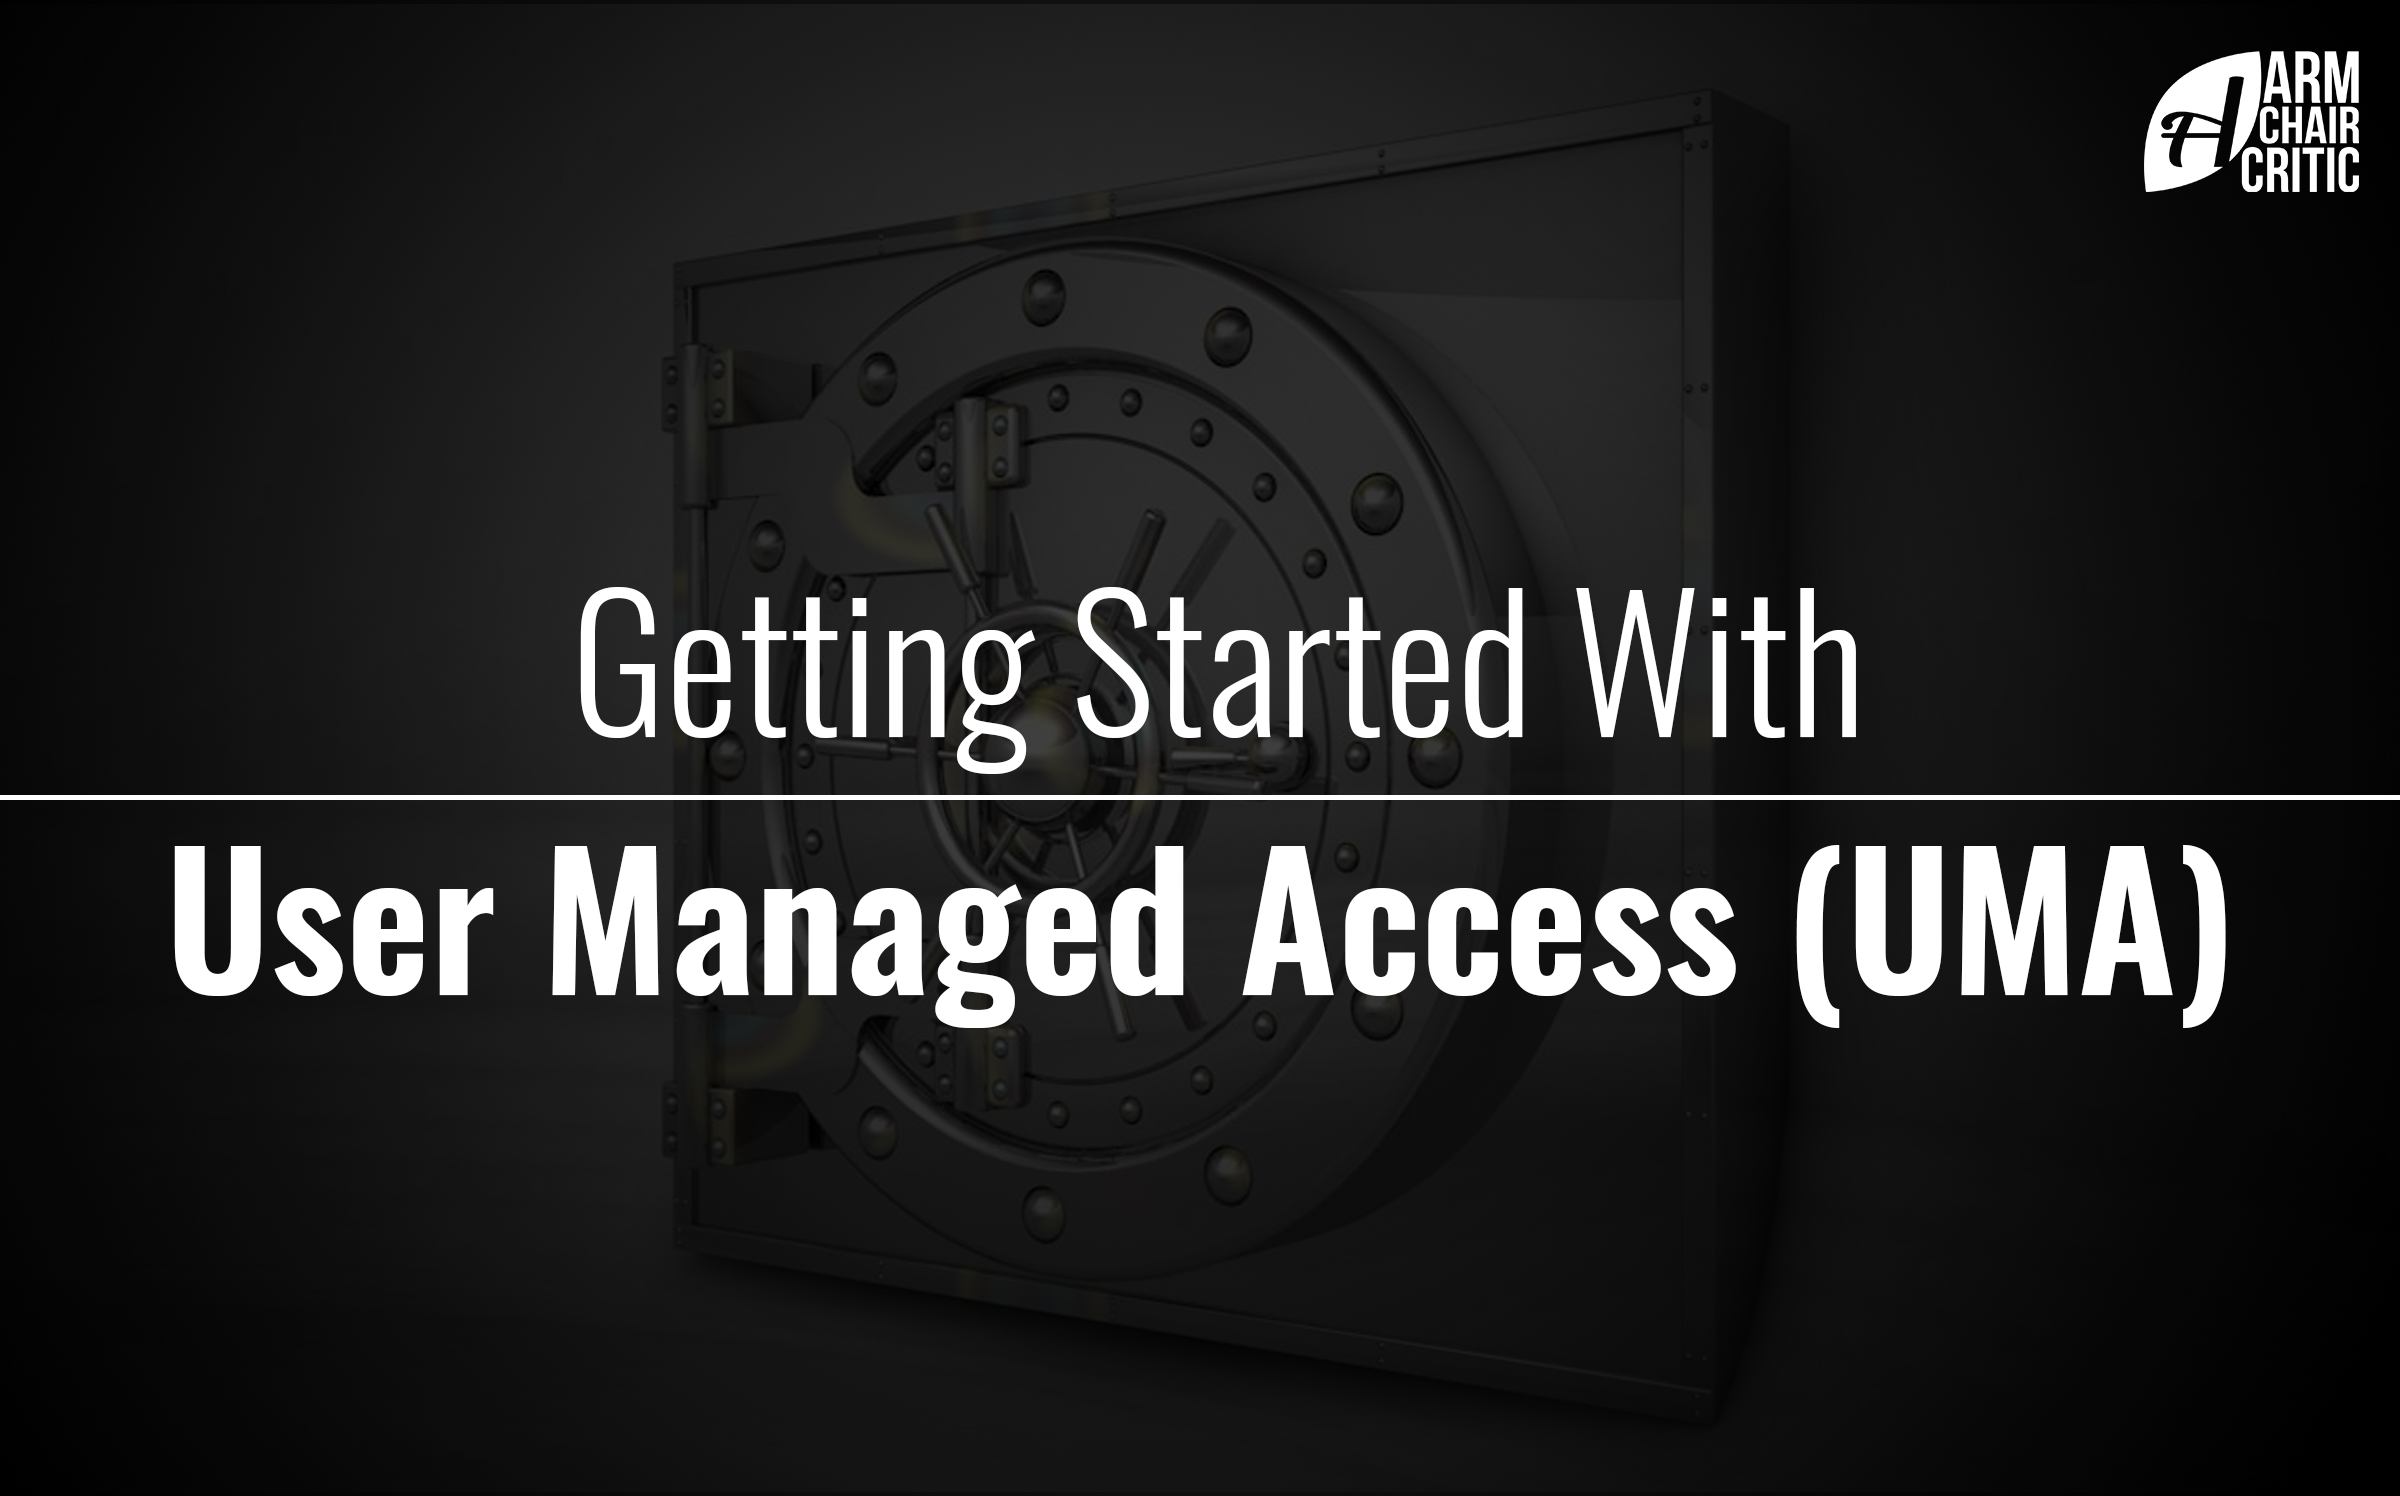 Getting started with User Managed Access (UMA)